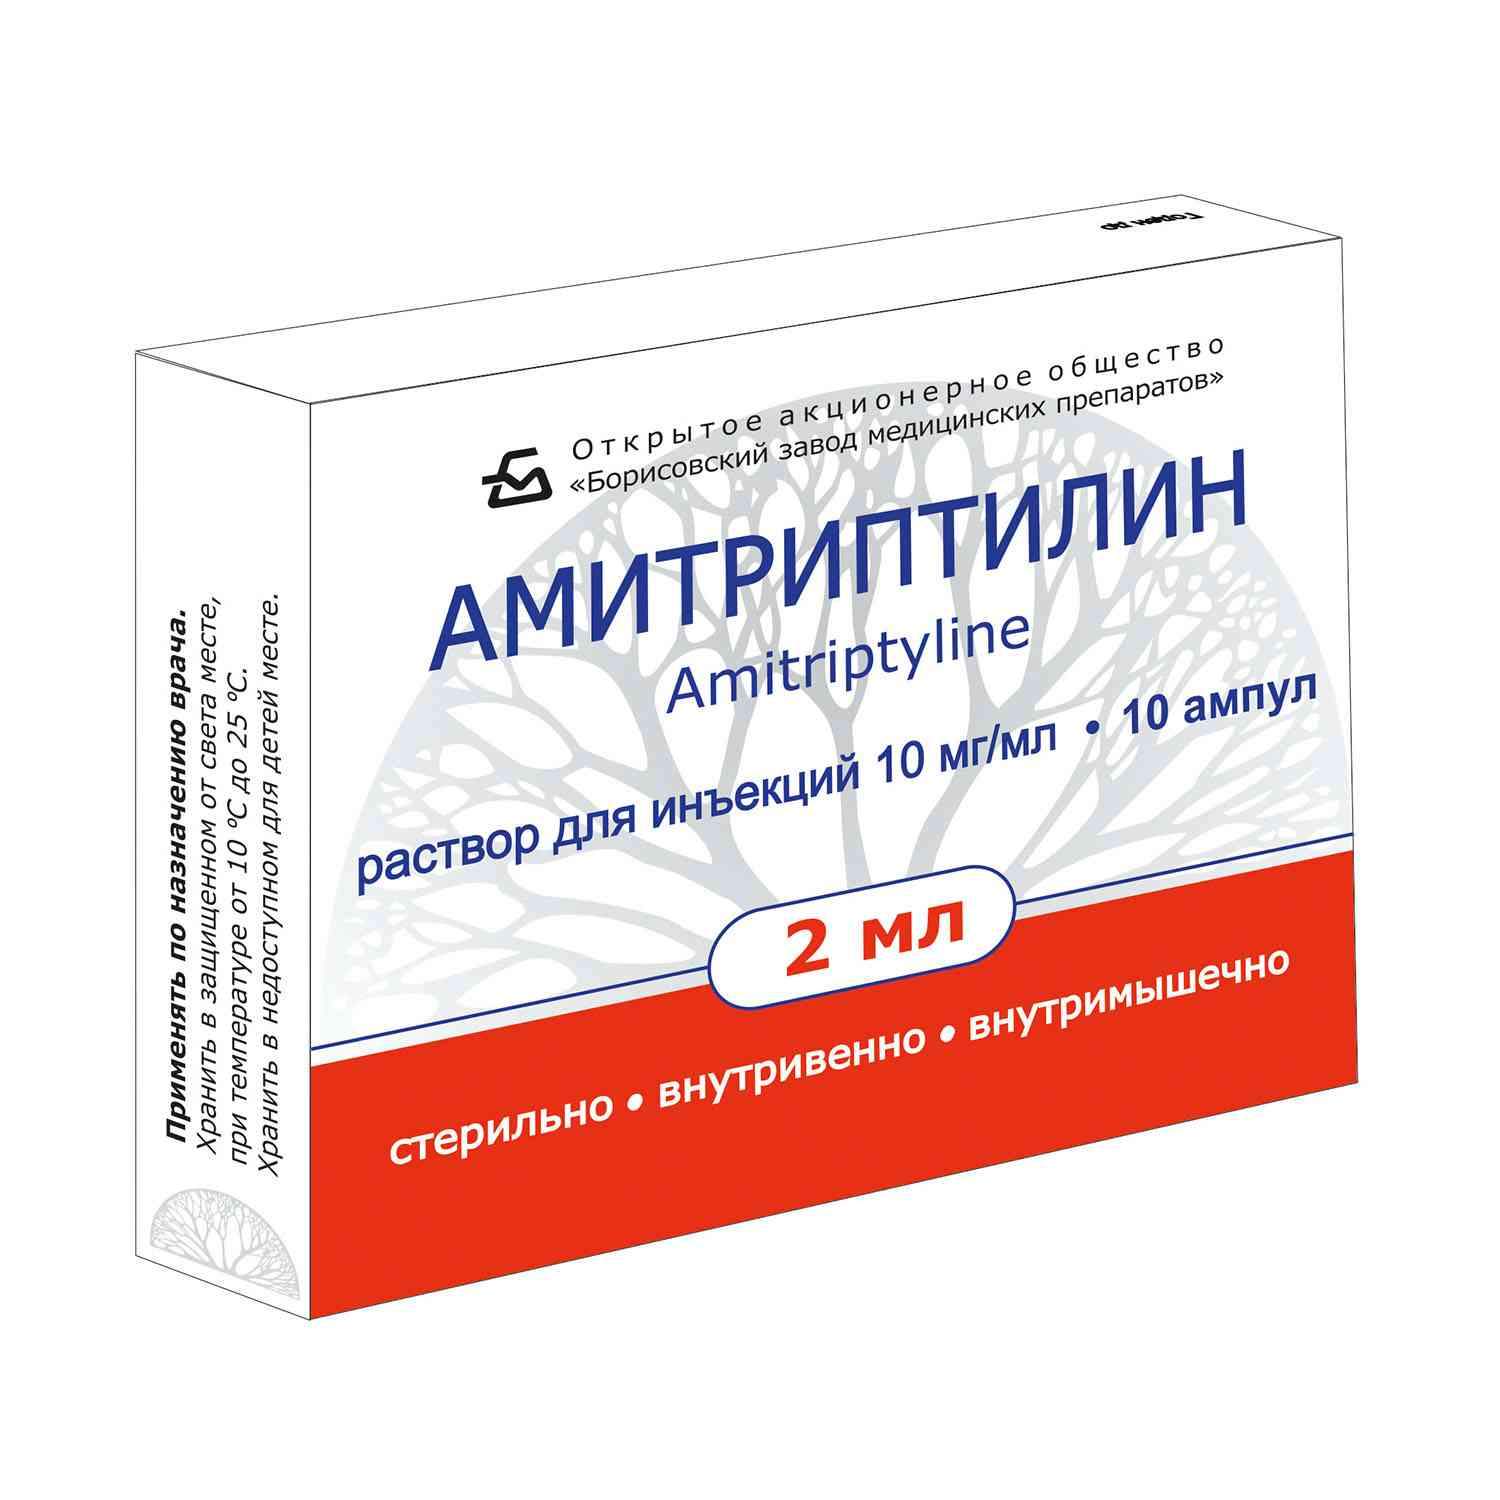 Amitriptyline (amityptilline) hydrochloride solution for injections 10 mg/ml. ampoules 2 ml. №10